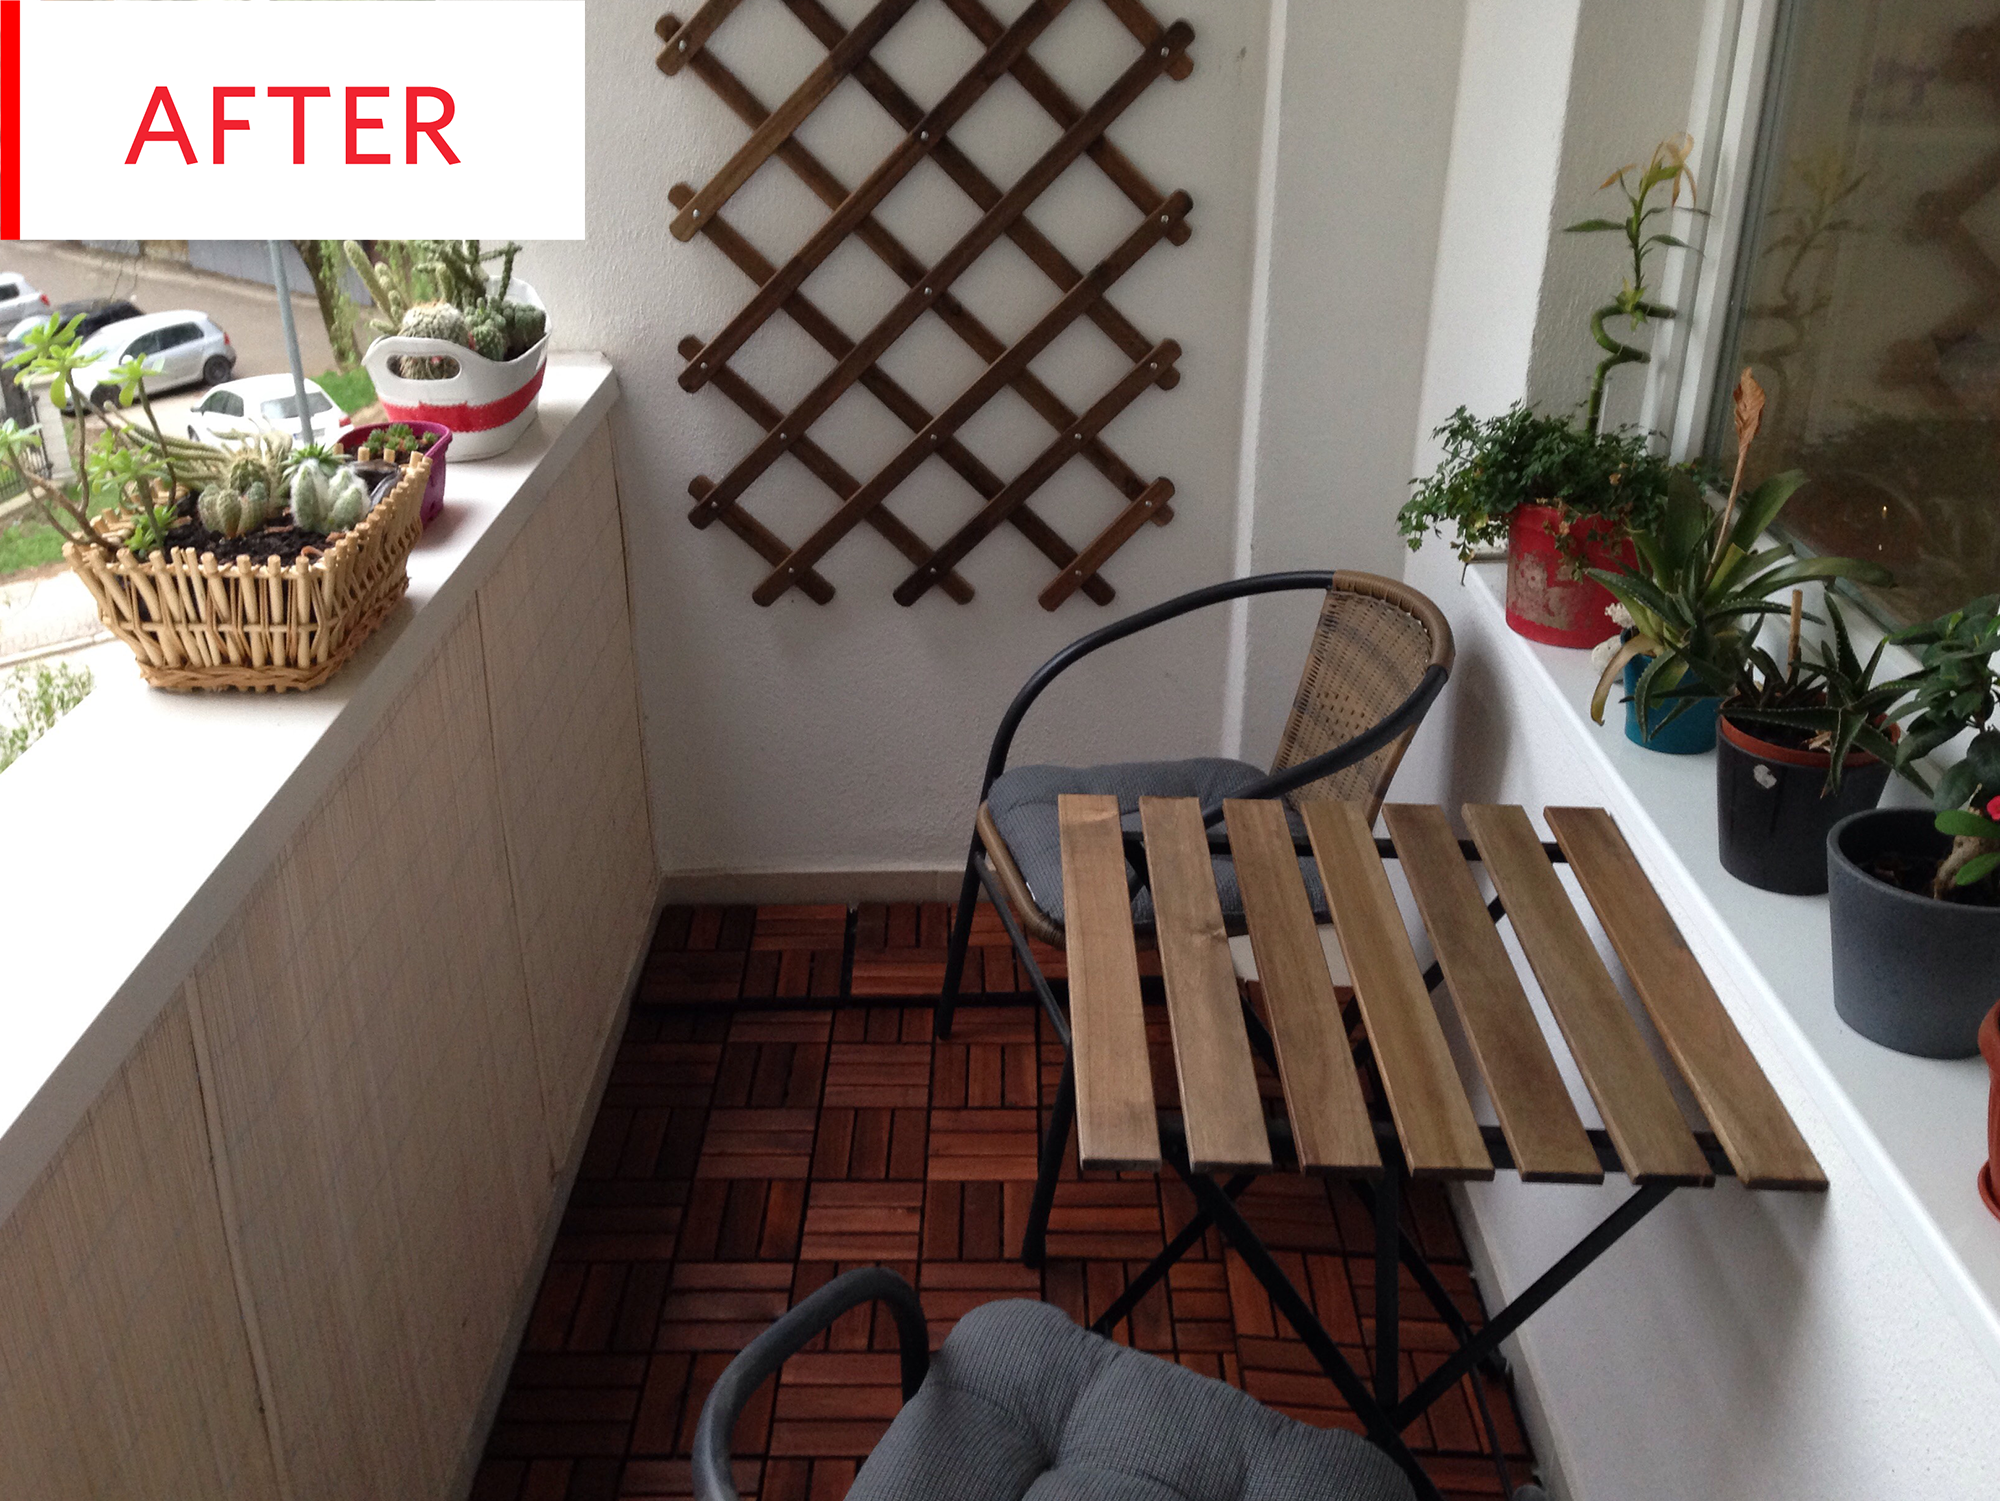 Before and After: This Cold, Concrete Balcony Gets an Easy $29